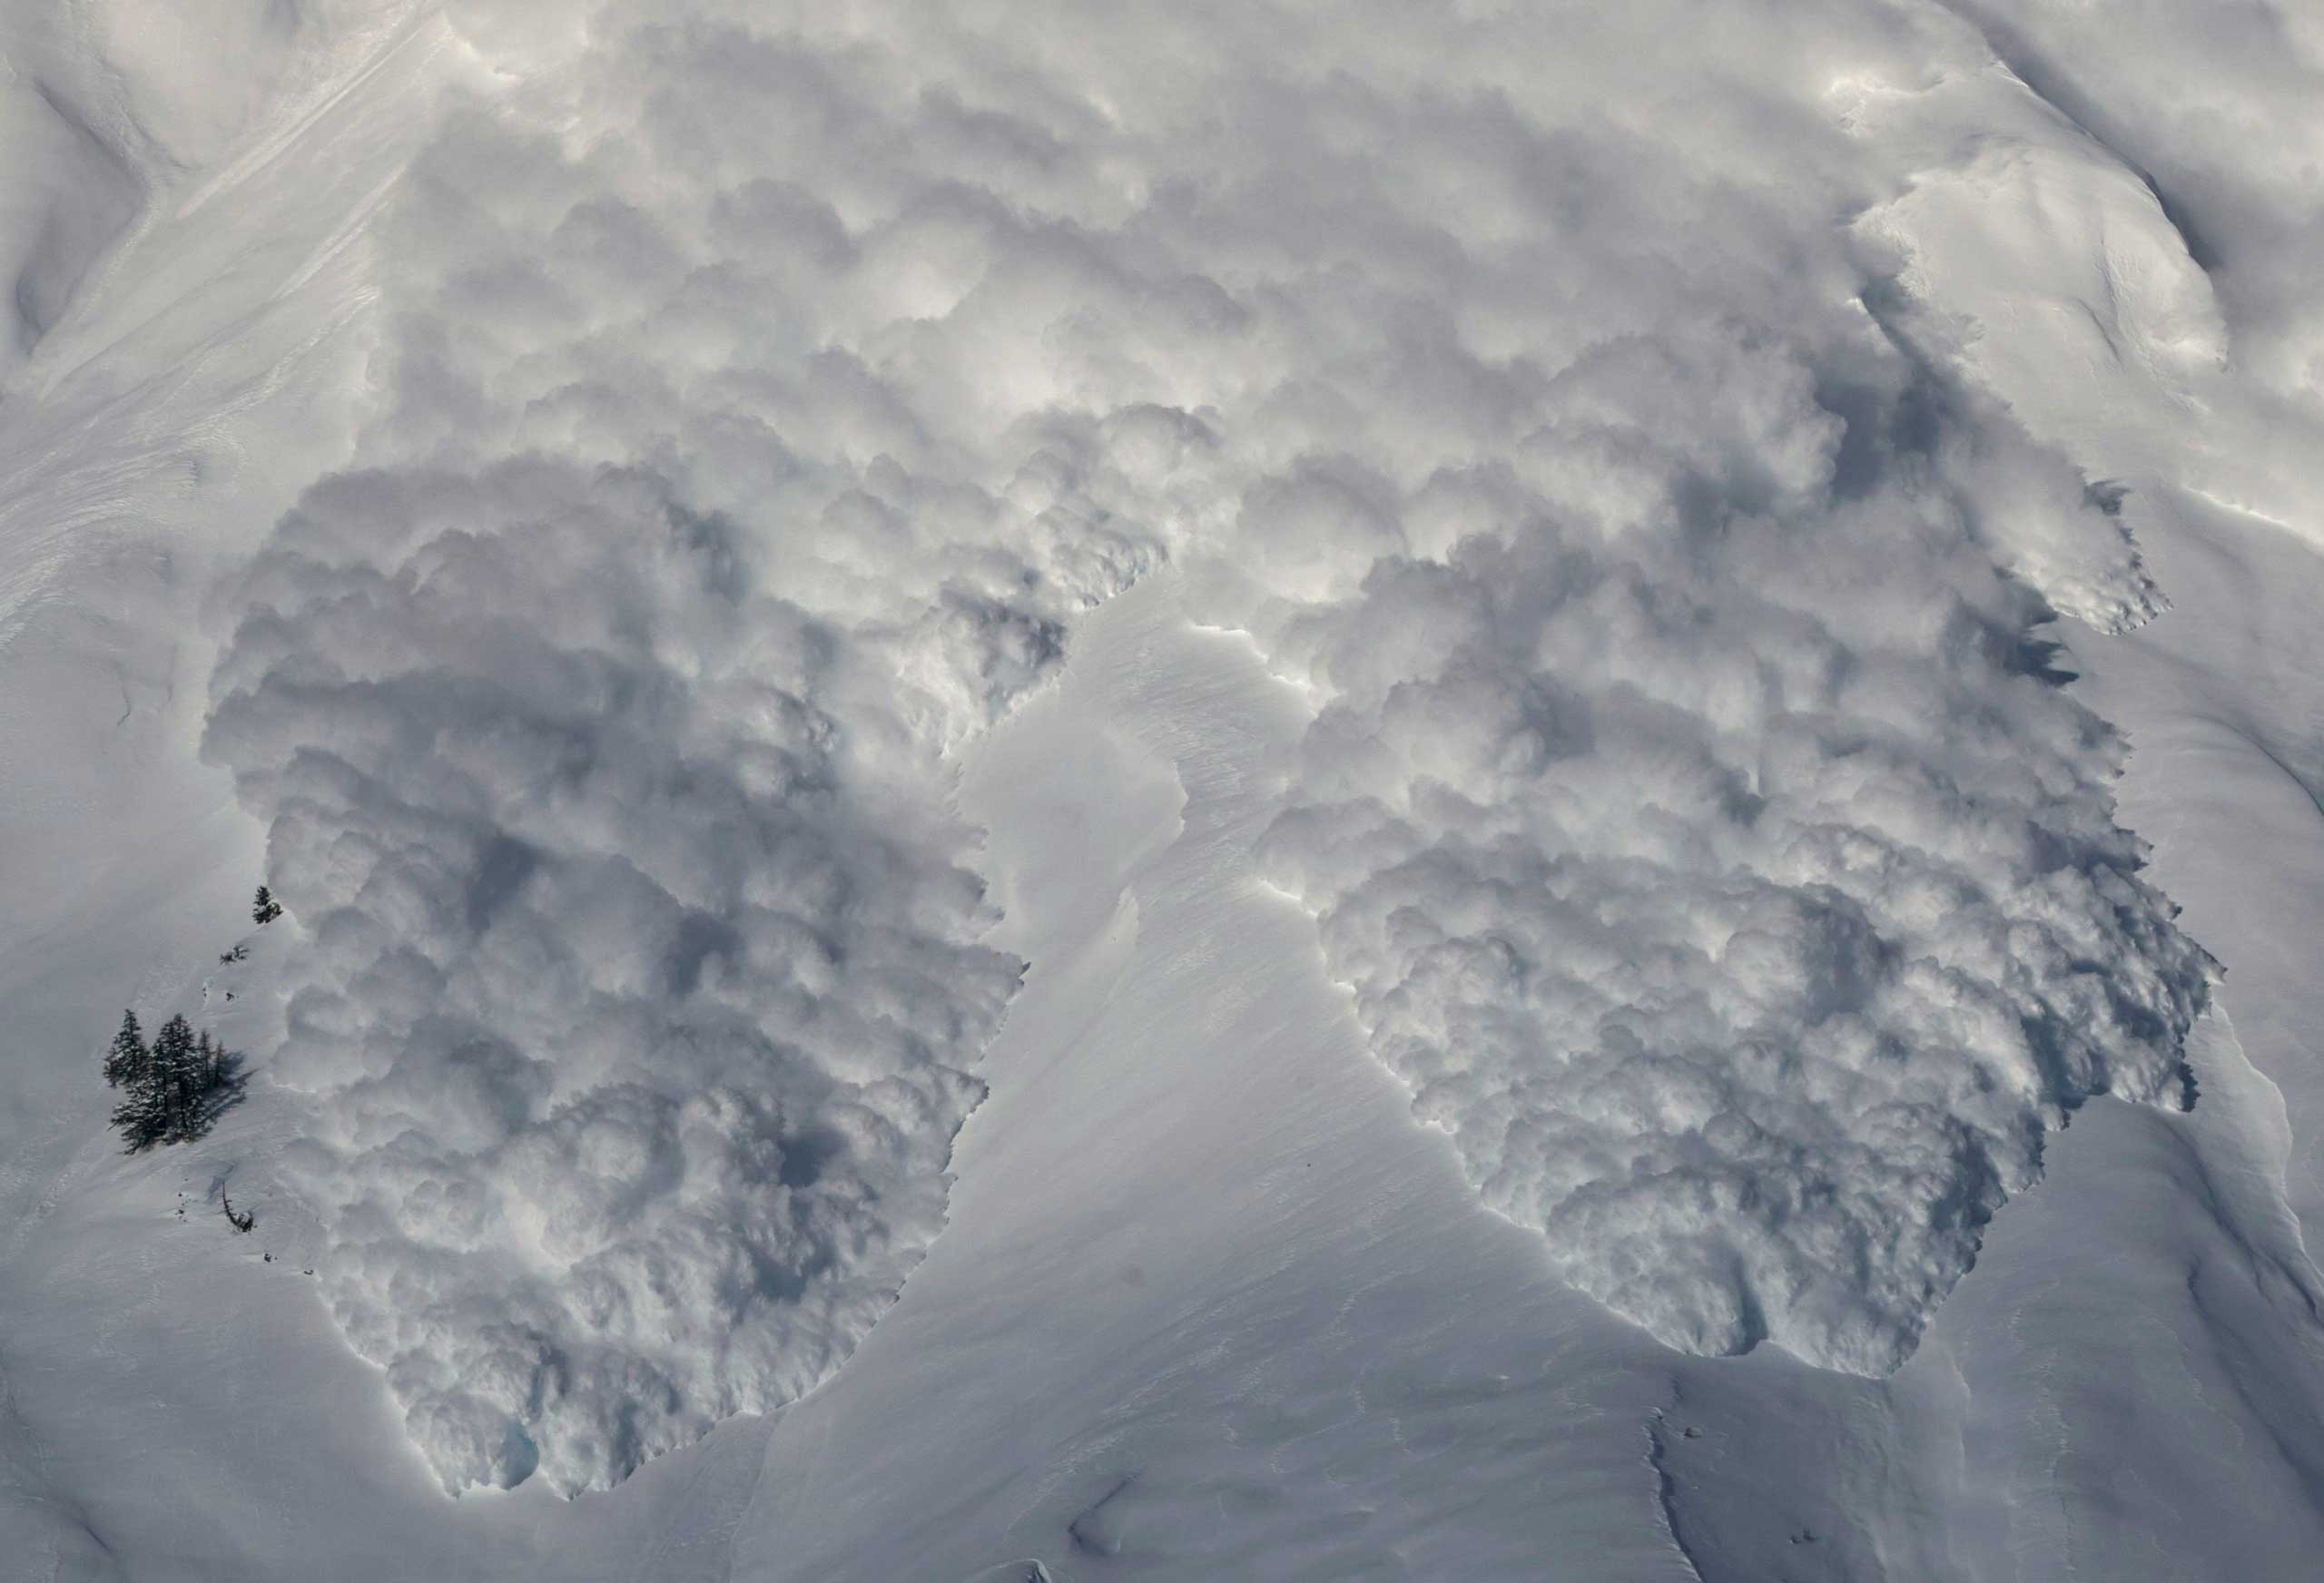 Feb. 3, 2015. An artificially triggered avalanche thunders down a mountain side at the Vallee de la Sionne in Anzere near Sion. The full-scale avalanche dynamics test site provides scientists and engineers of the Swiss Institute of Research of Snow and Avalanches with essential data to understand and model avalanche motion.